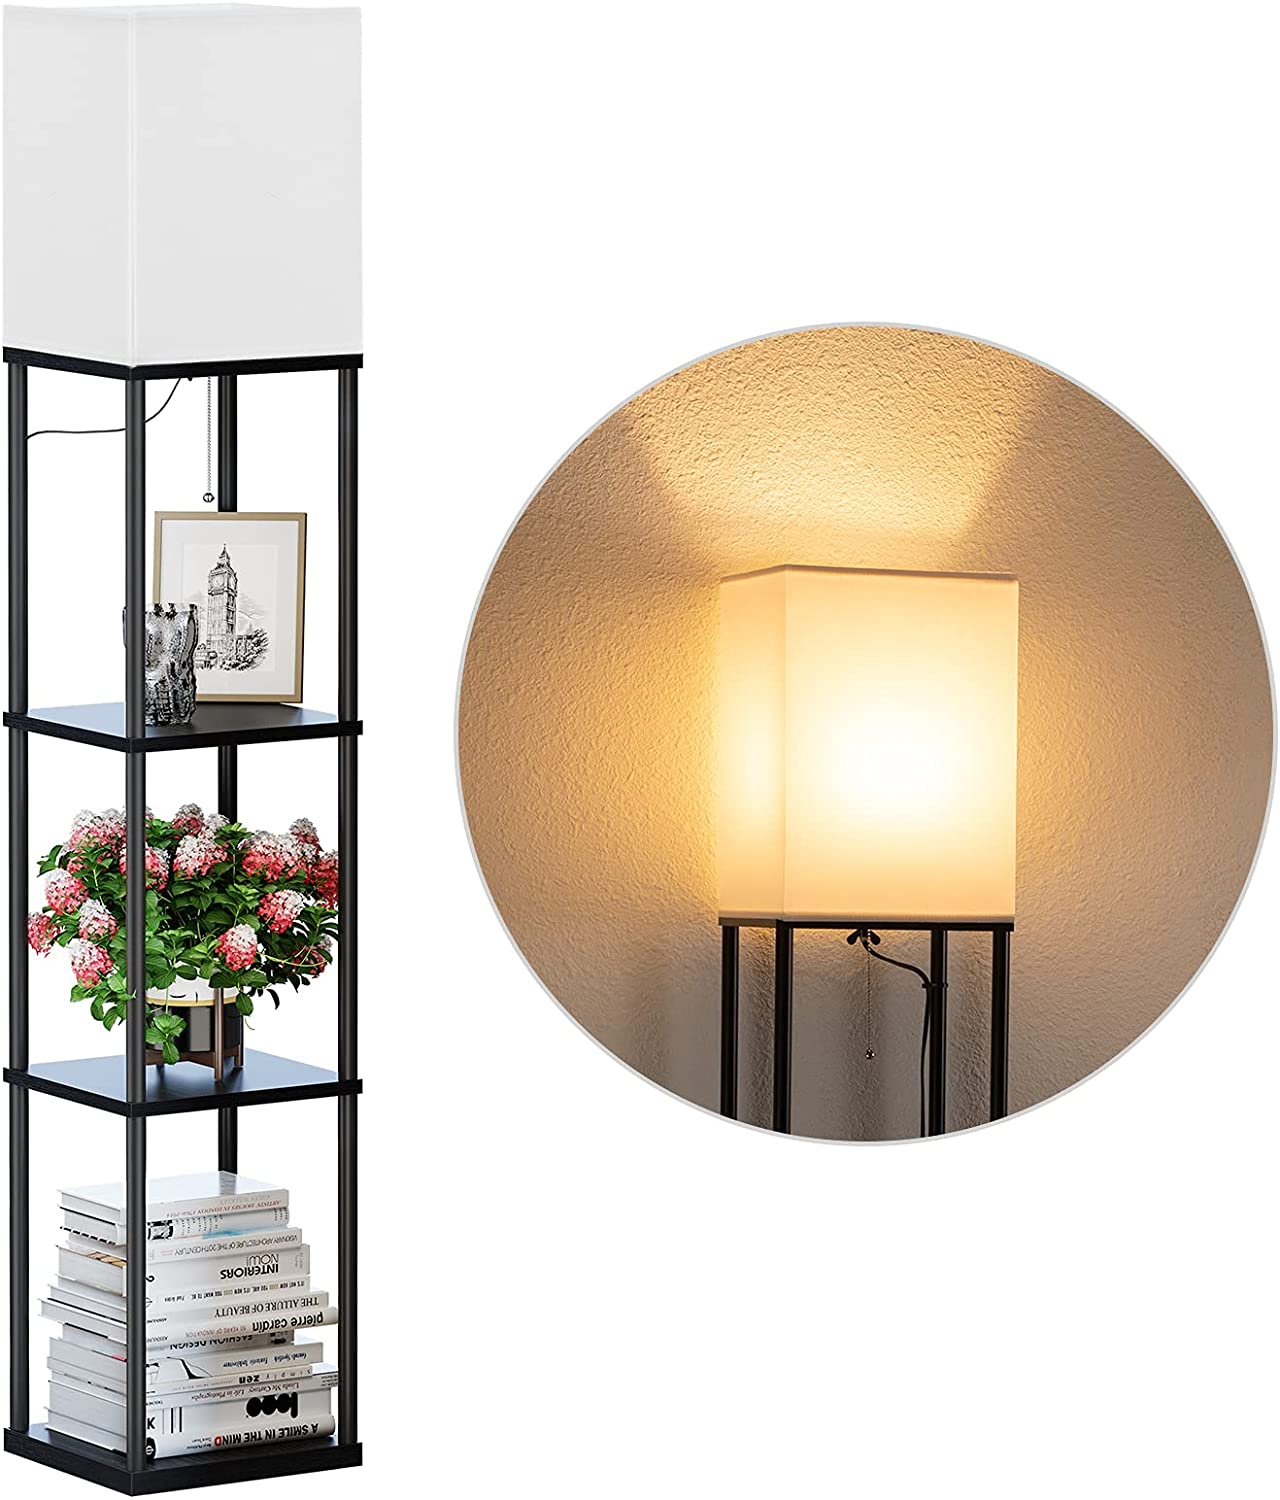 SUNMORY Shelf Floor Lamp with 3-Way Dimmable LED Bulb, Modern Square Standing Lamp with Shelves and White Shade, Corner Display Bookshelf Lamp for Living Room and Bedroom(Black)